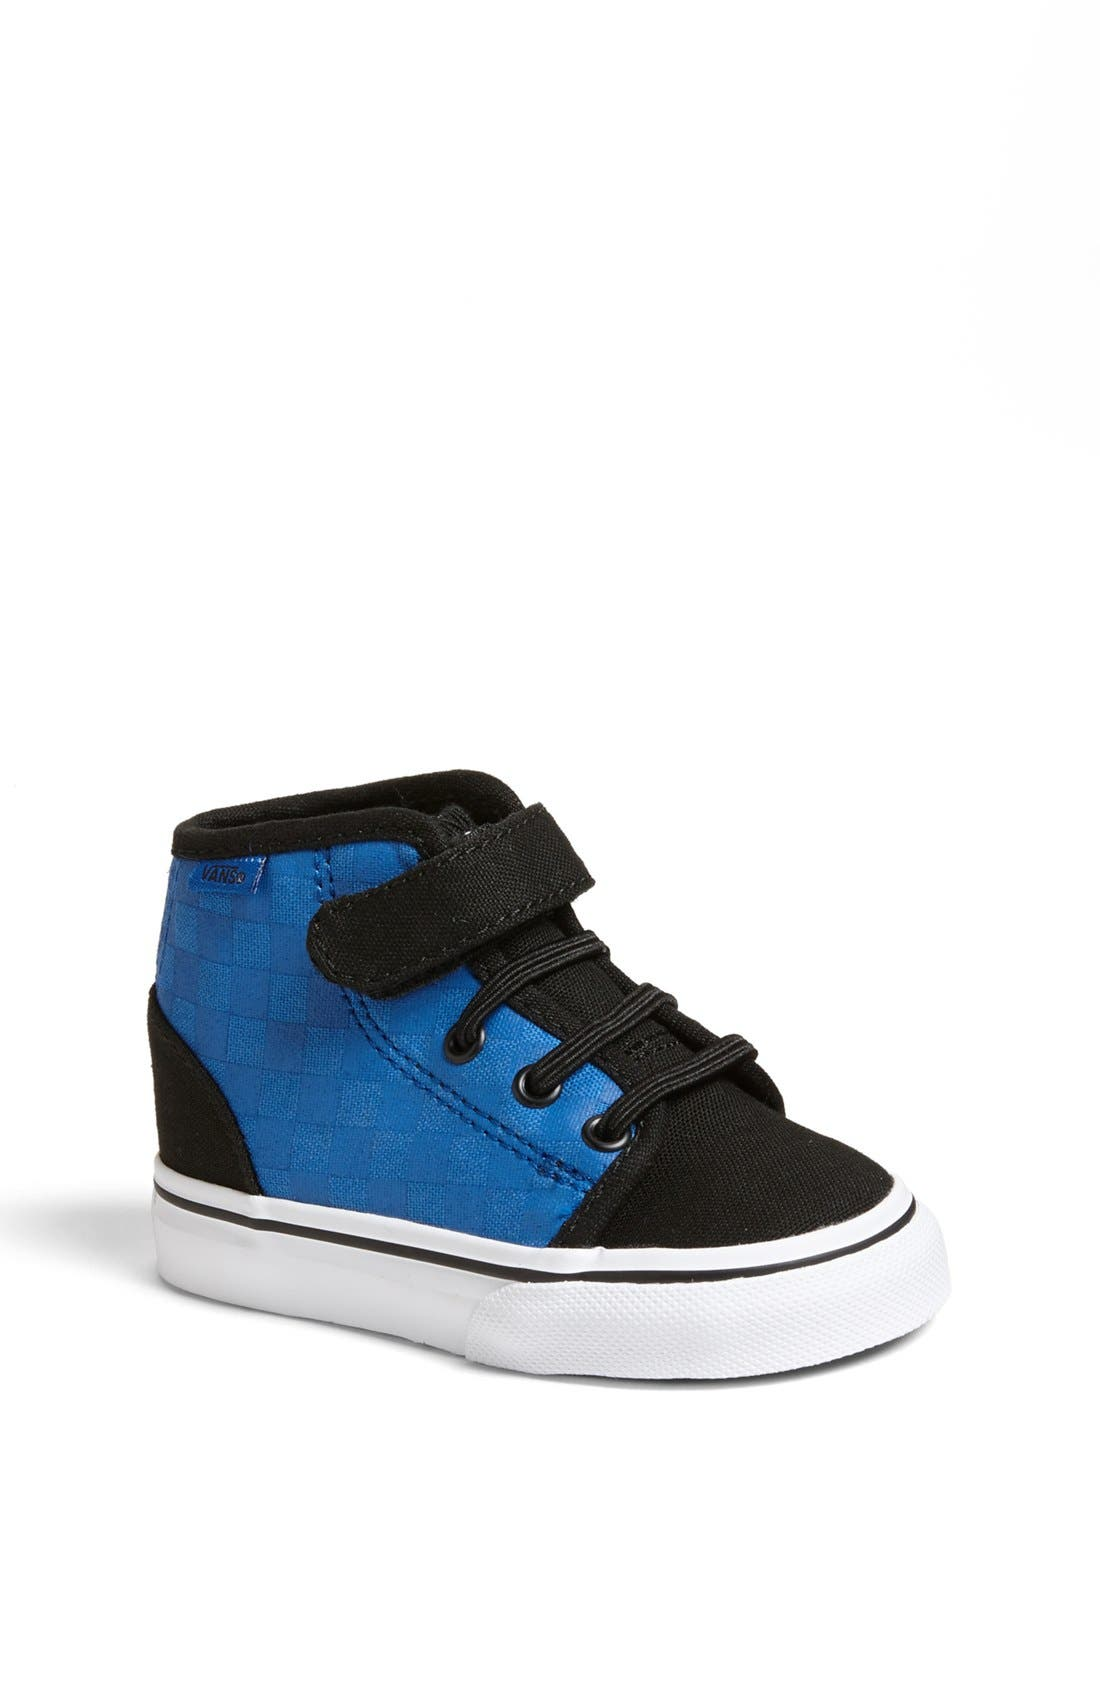 Main Image - Vans High Top Sneaker (Baby, Walker & Toddler)